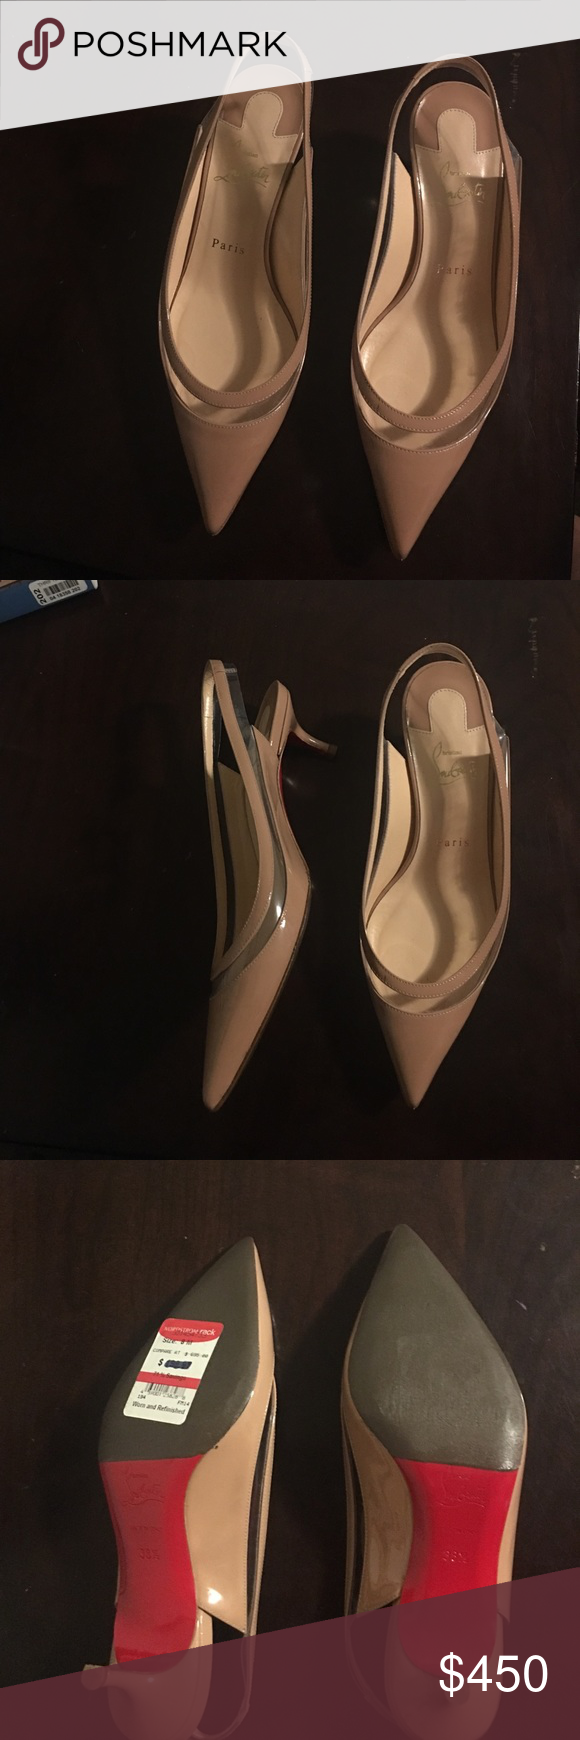 fee14e93729 Christian Louboutin kitten heels Refurbished from Nordstrom Rack ...